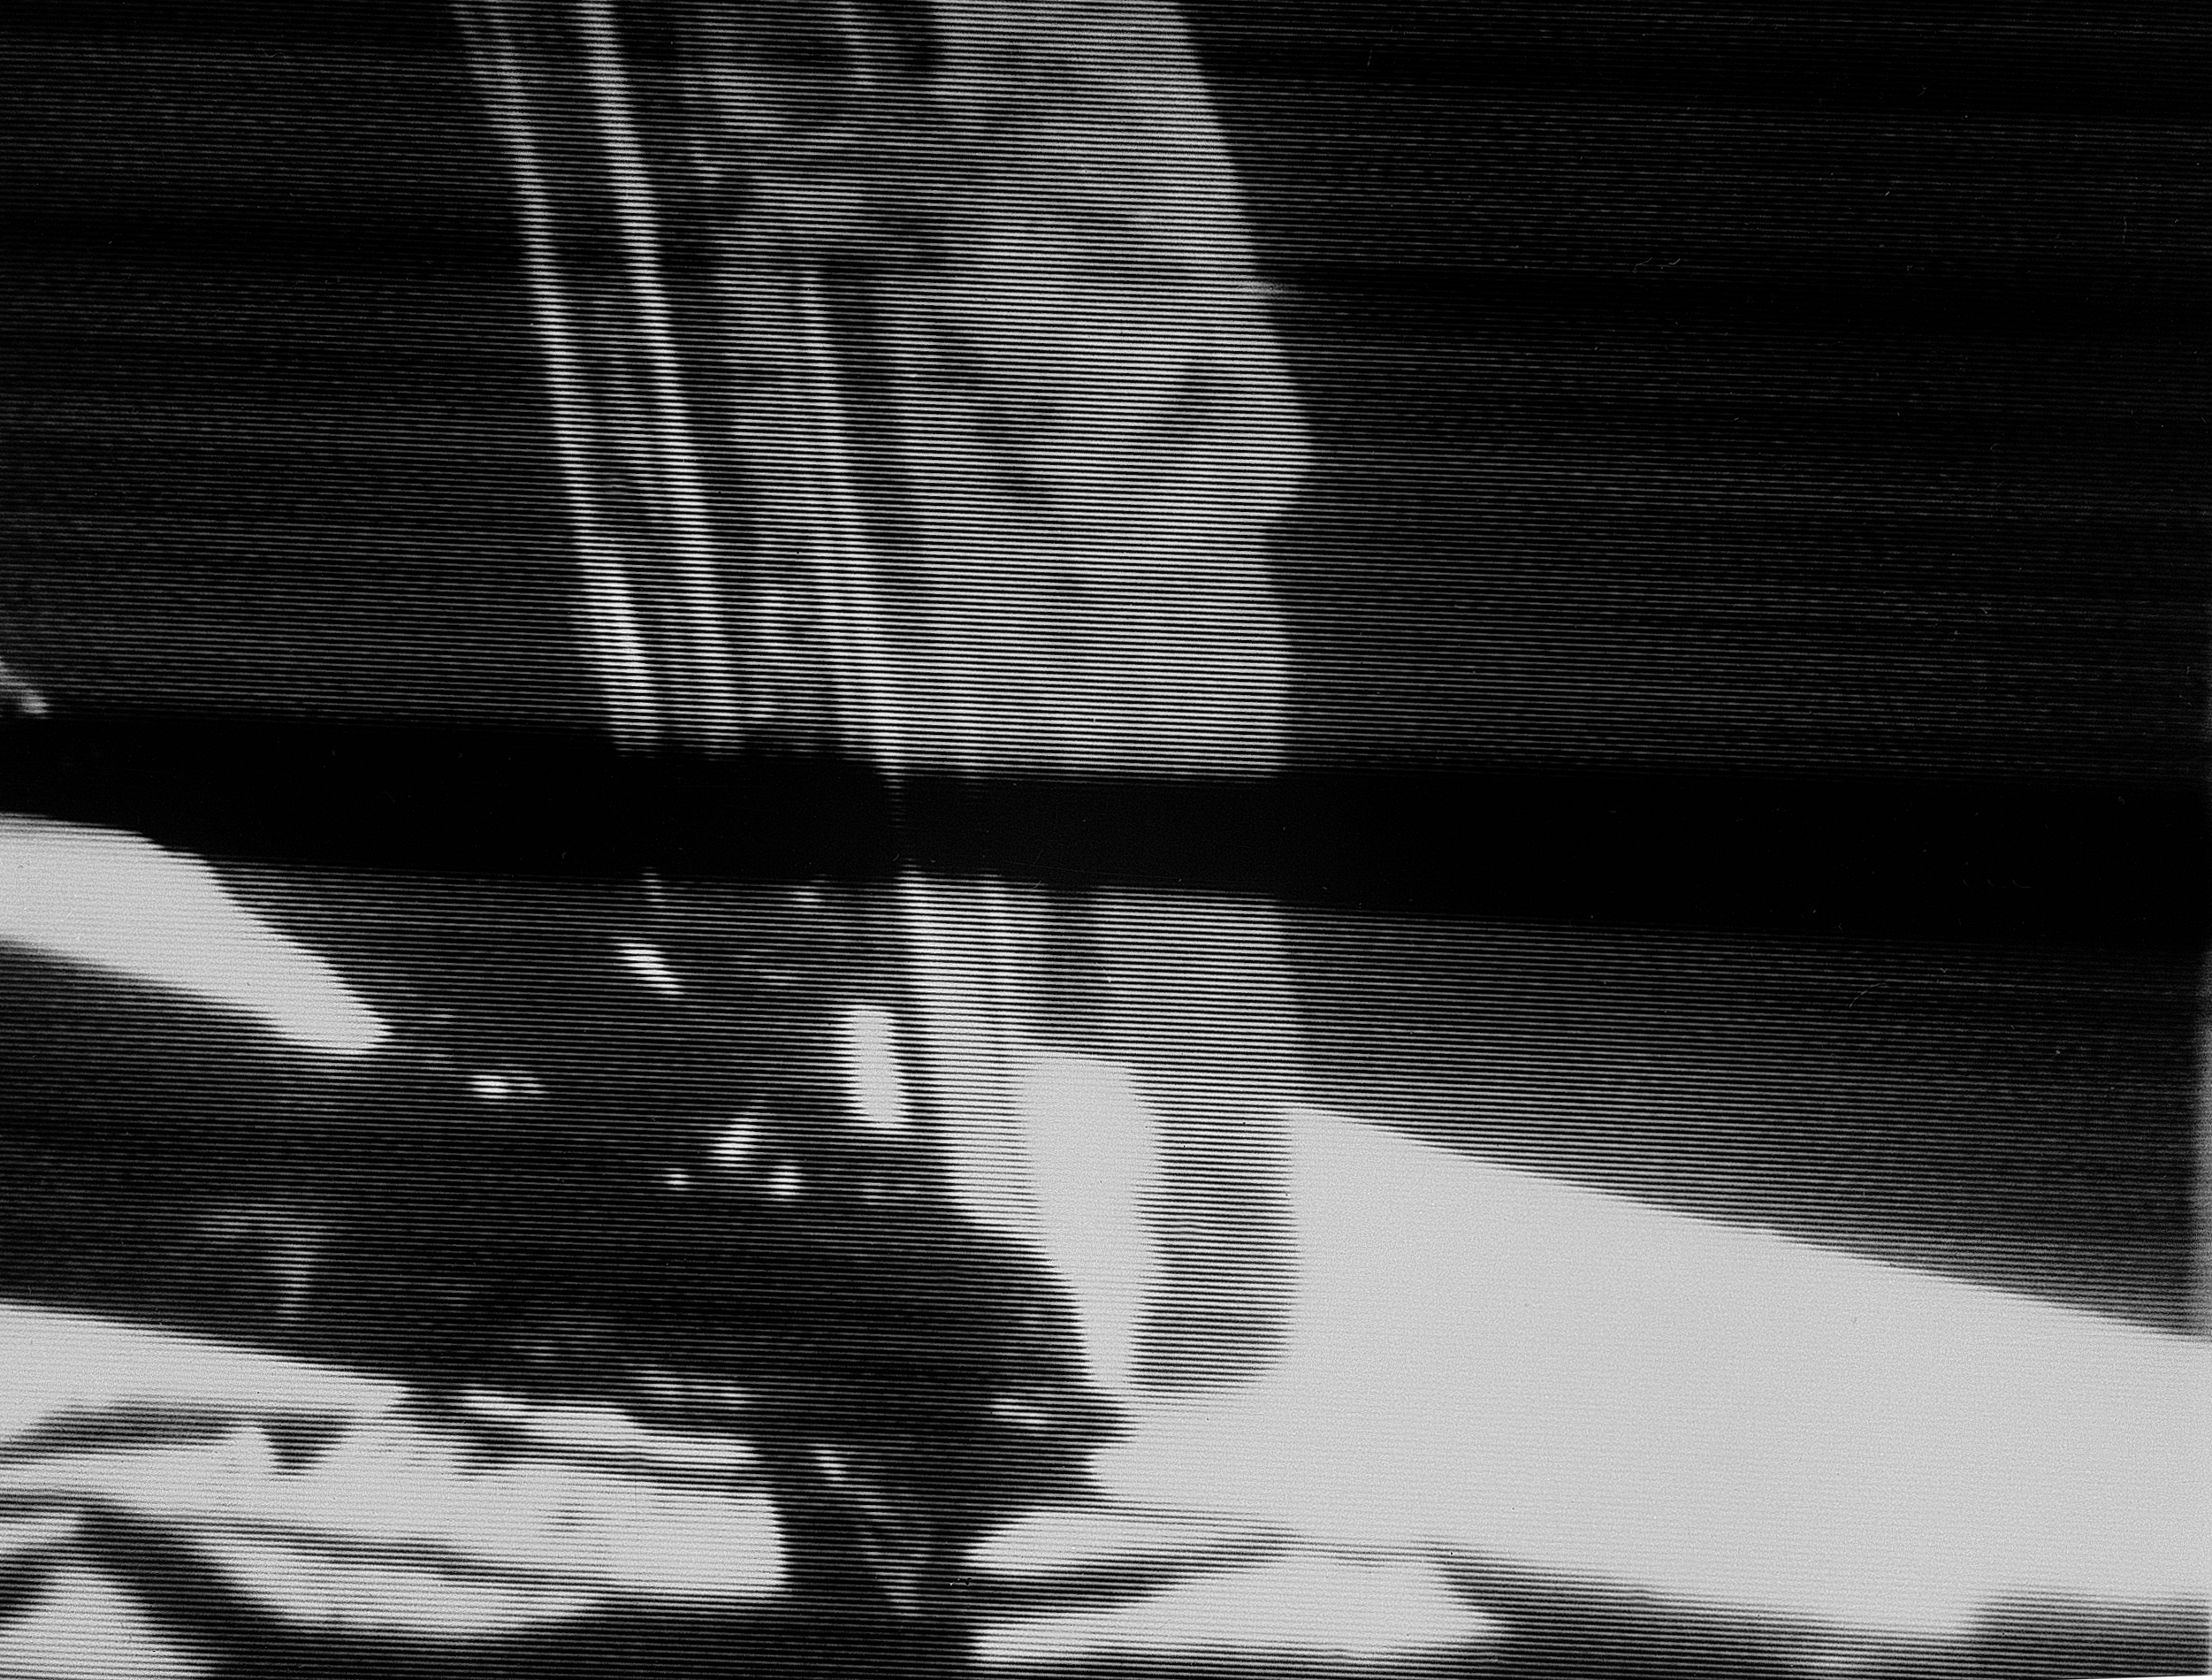 A poor quality black and white image of a man standing coming down a ladder.